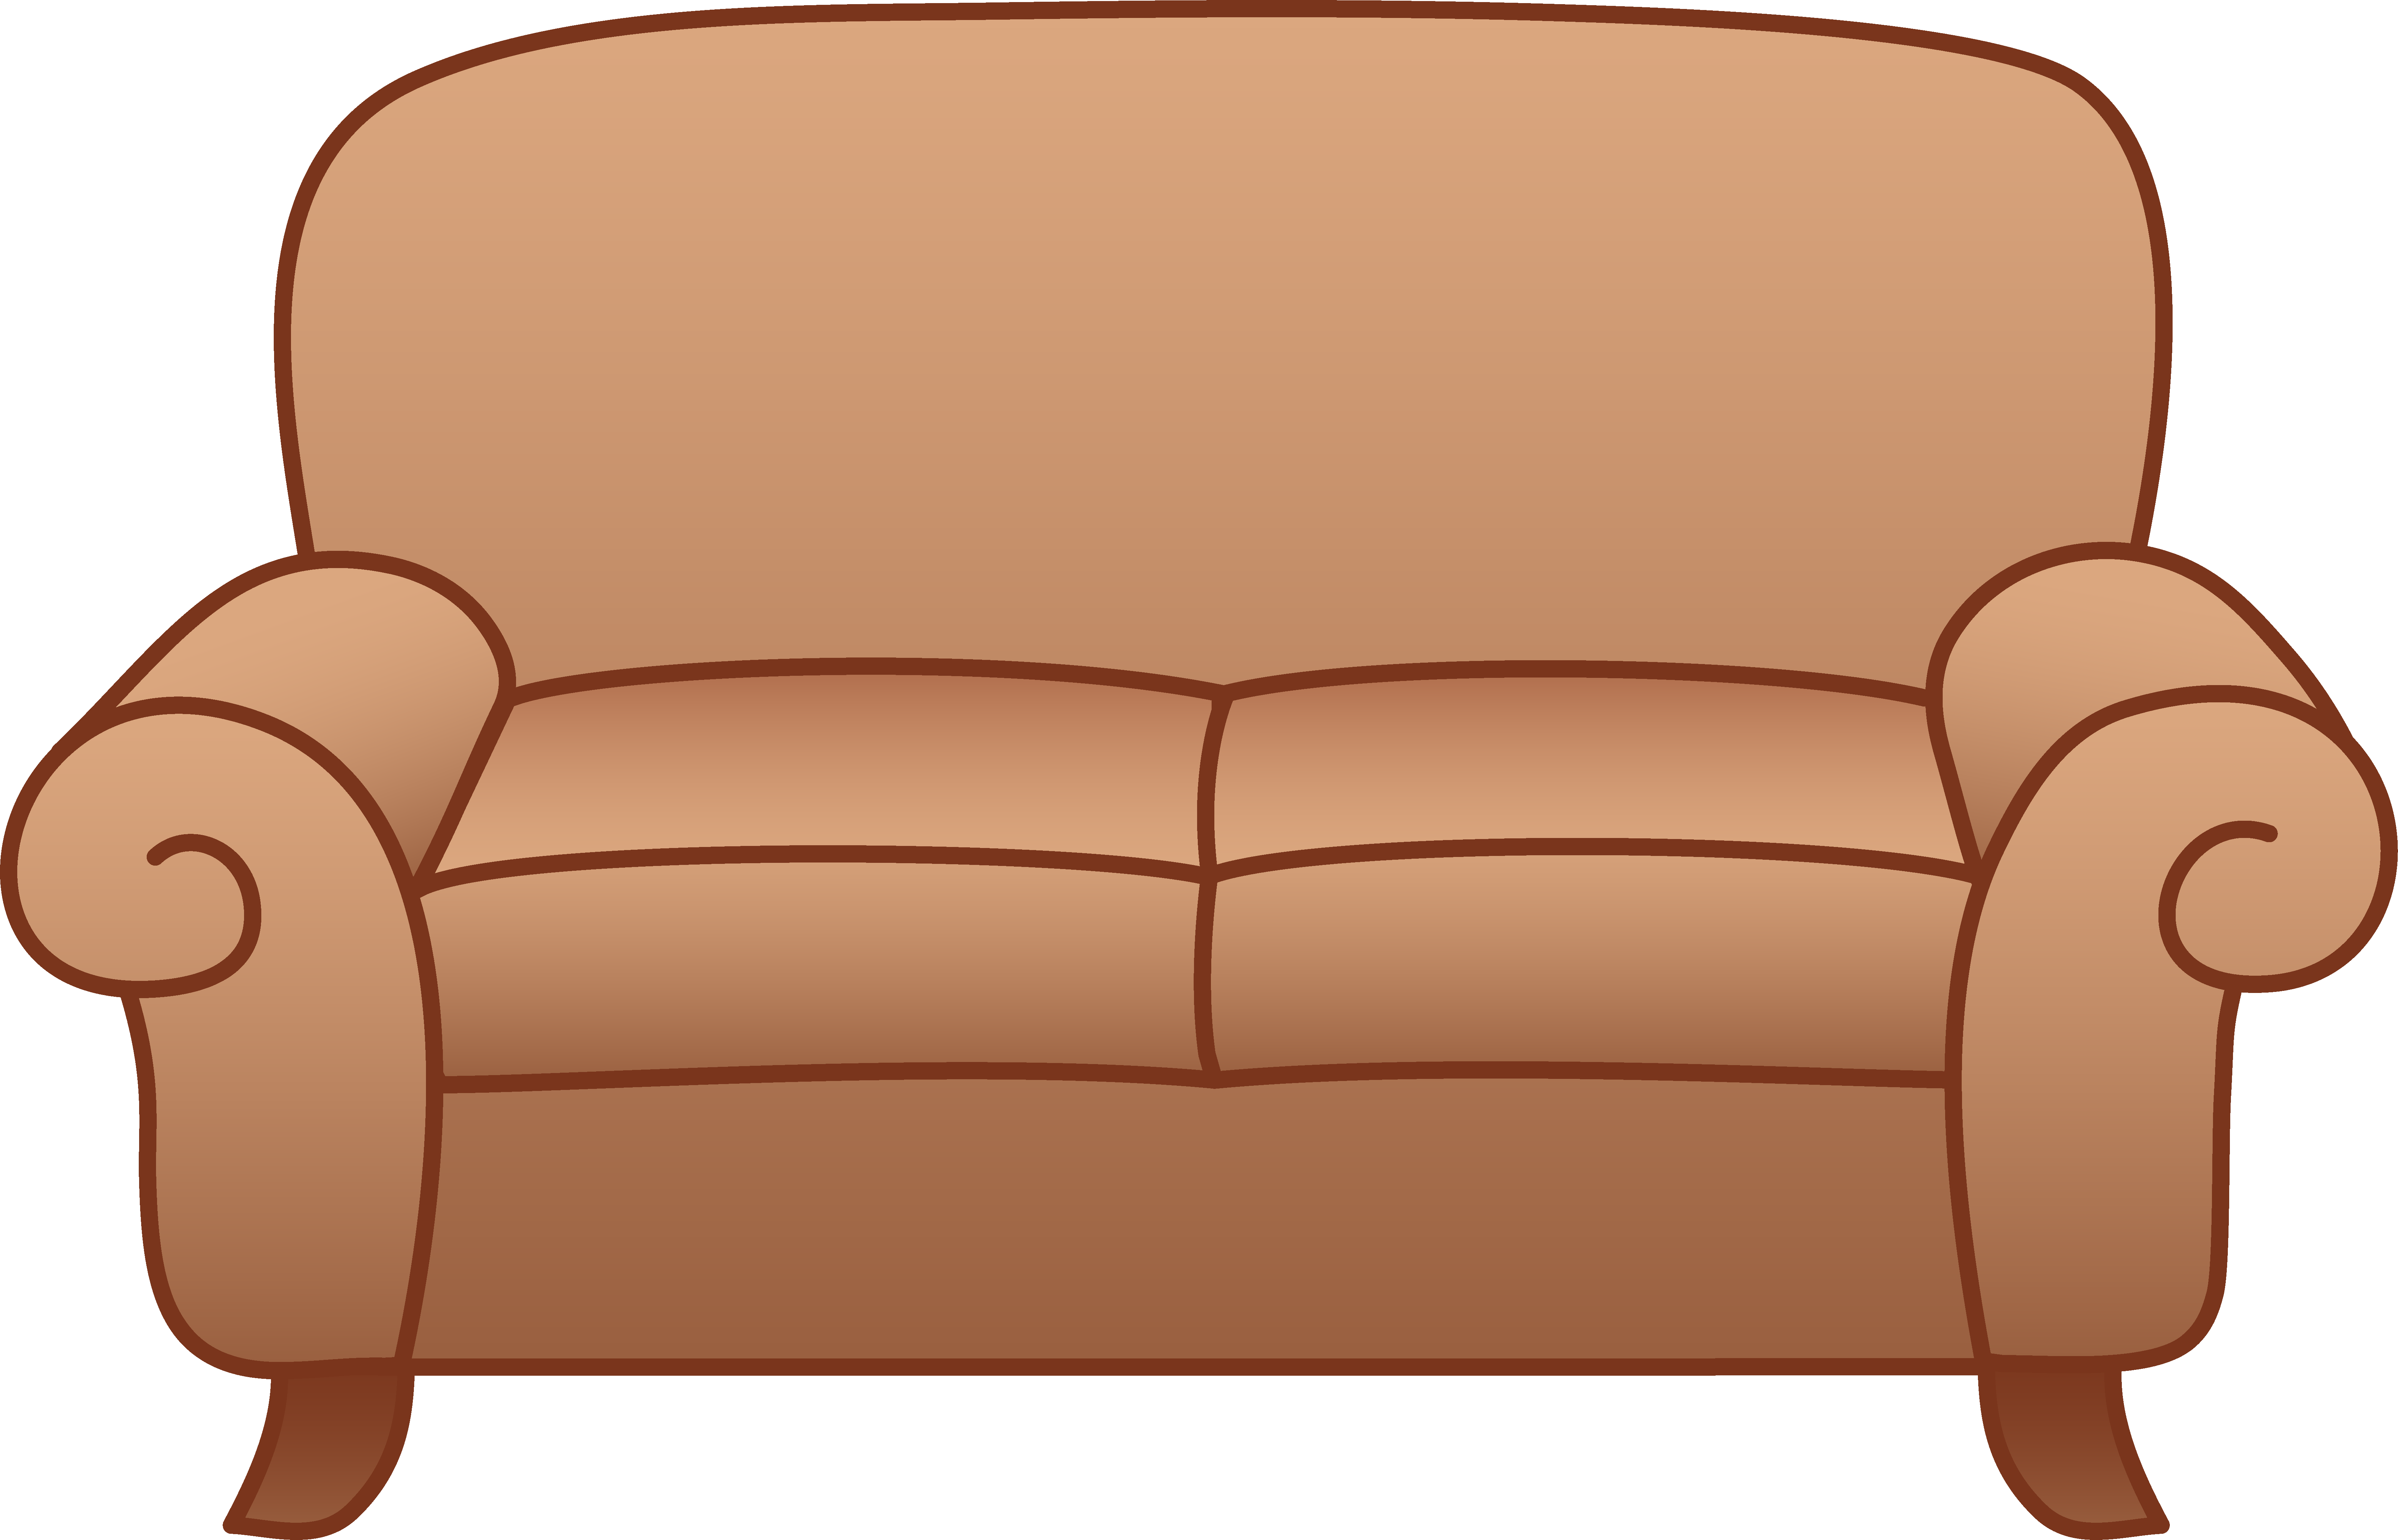 Free Cartoon Furniture Cliparts, Download Free Clip Art.